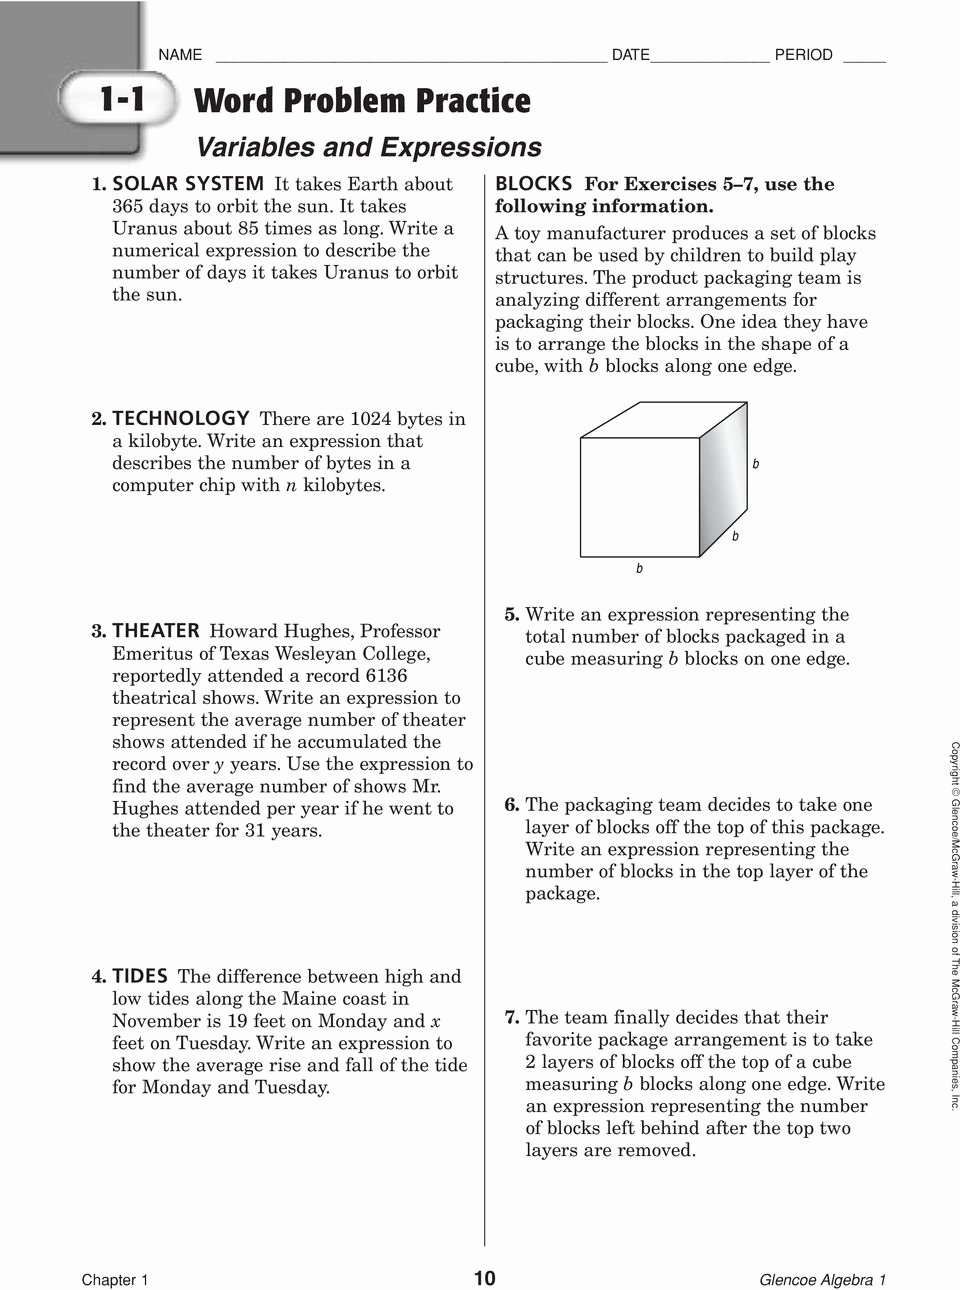 Algebra 2 Word Problems Worksheet Awesome 1 1 Word Problem Practice Variables and Expressions Pdf